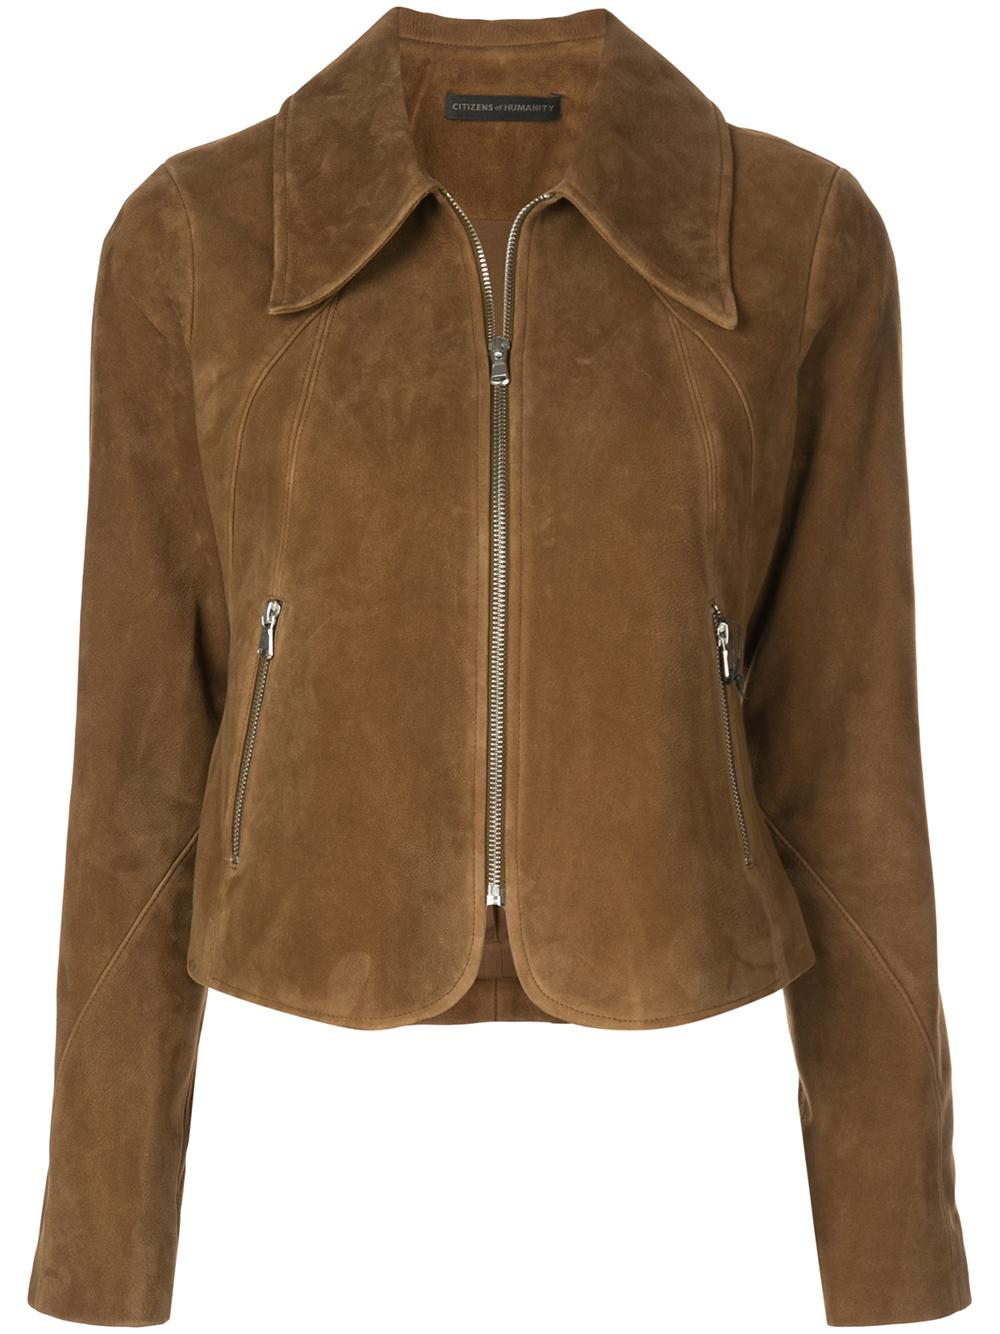 Iona Suede Open Jacket